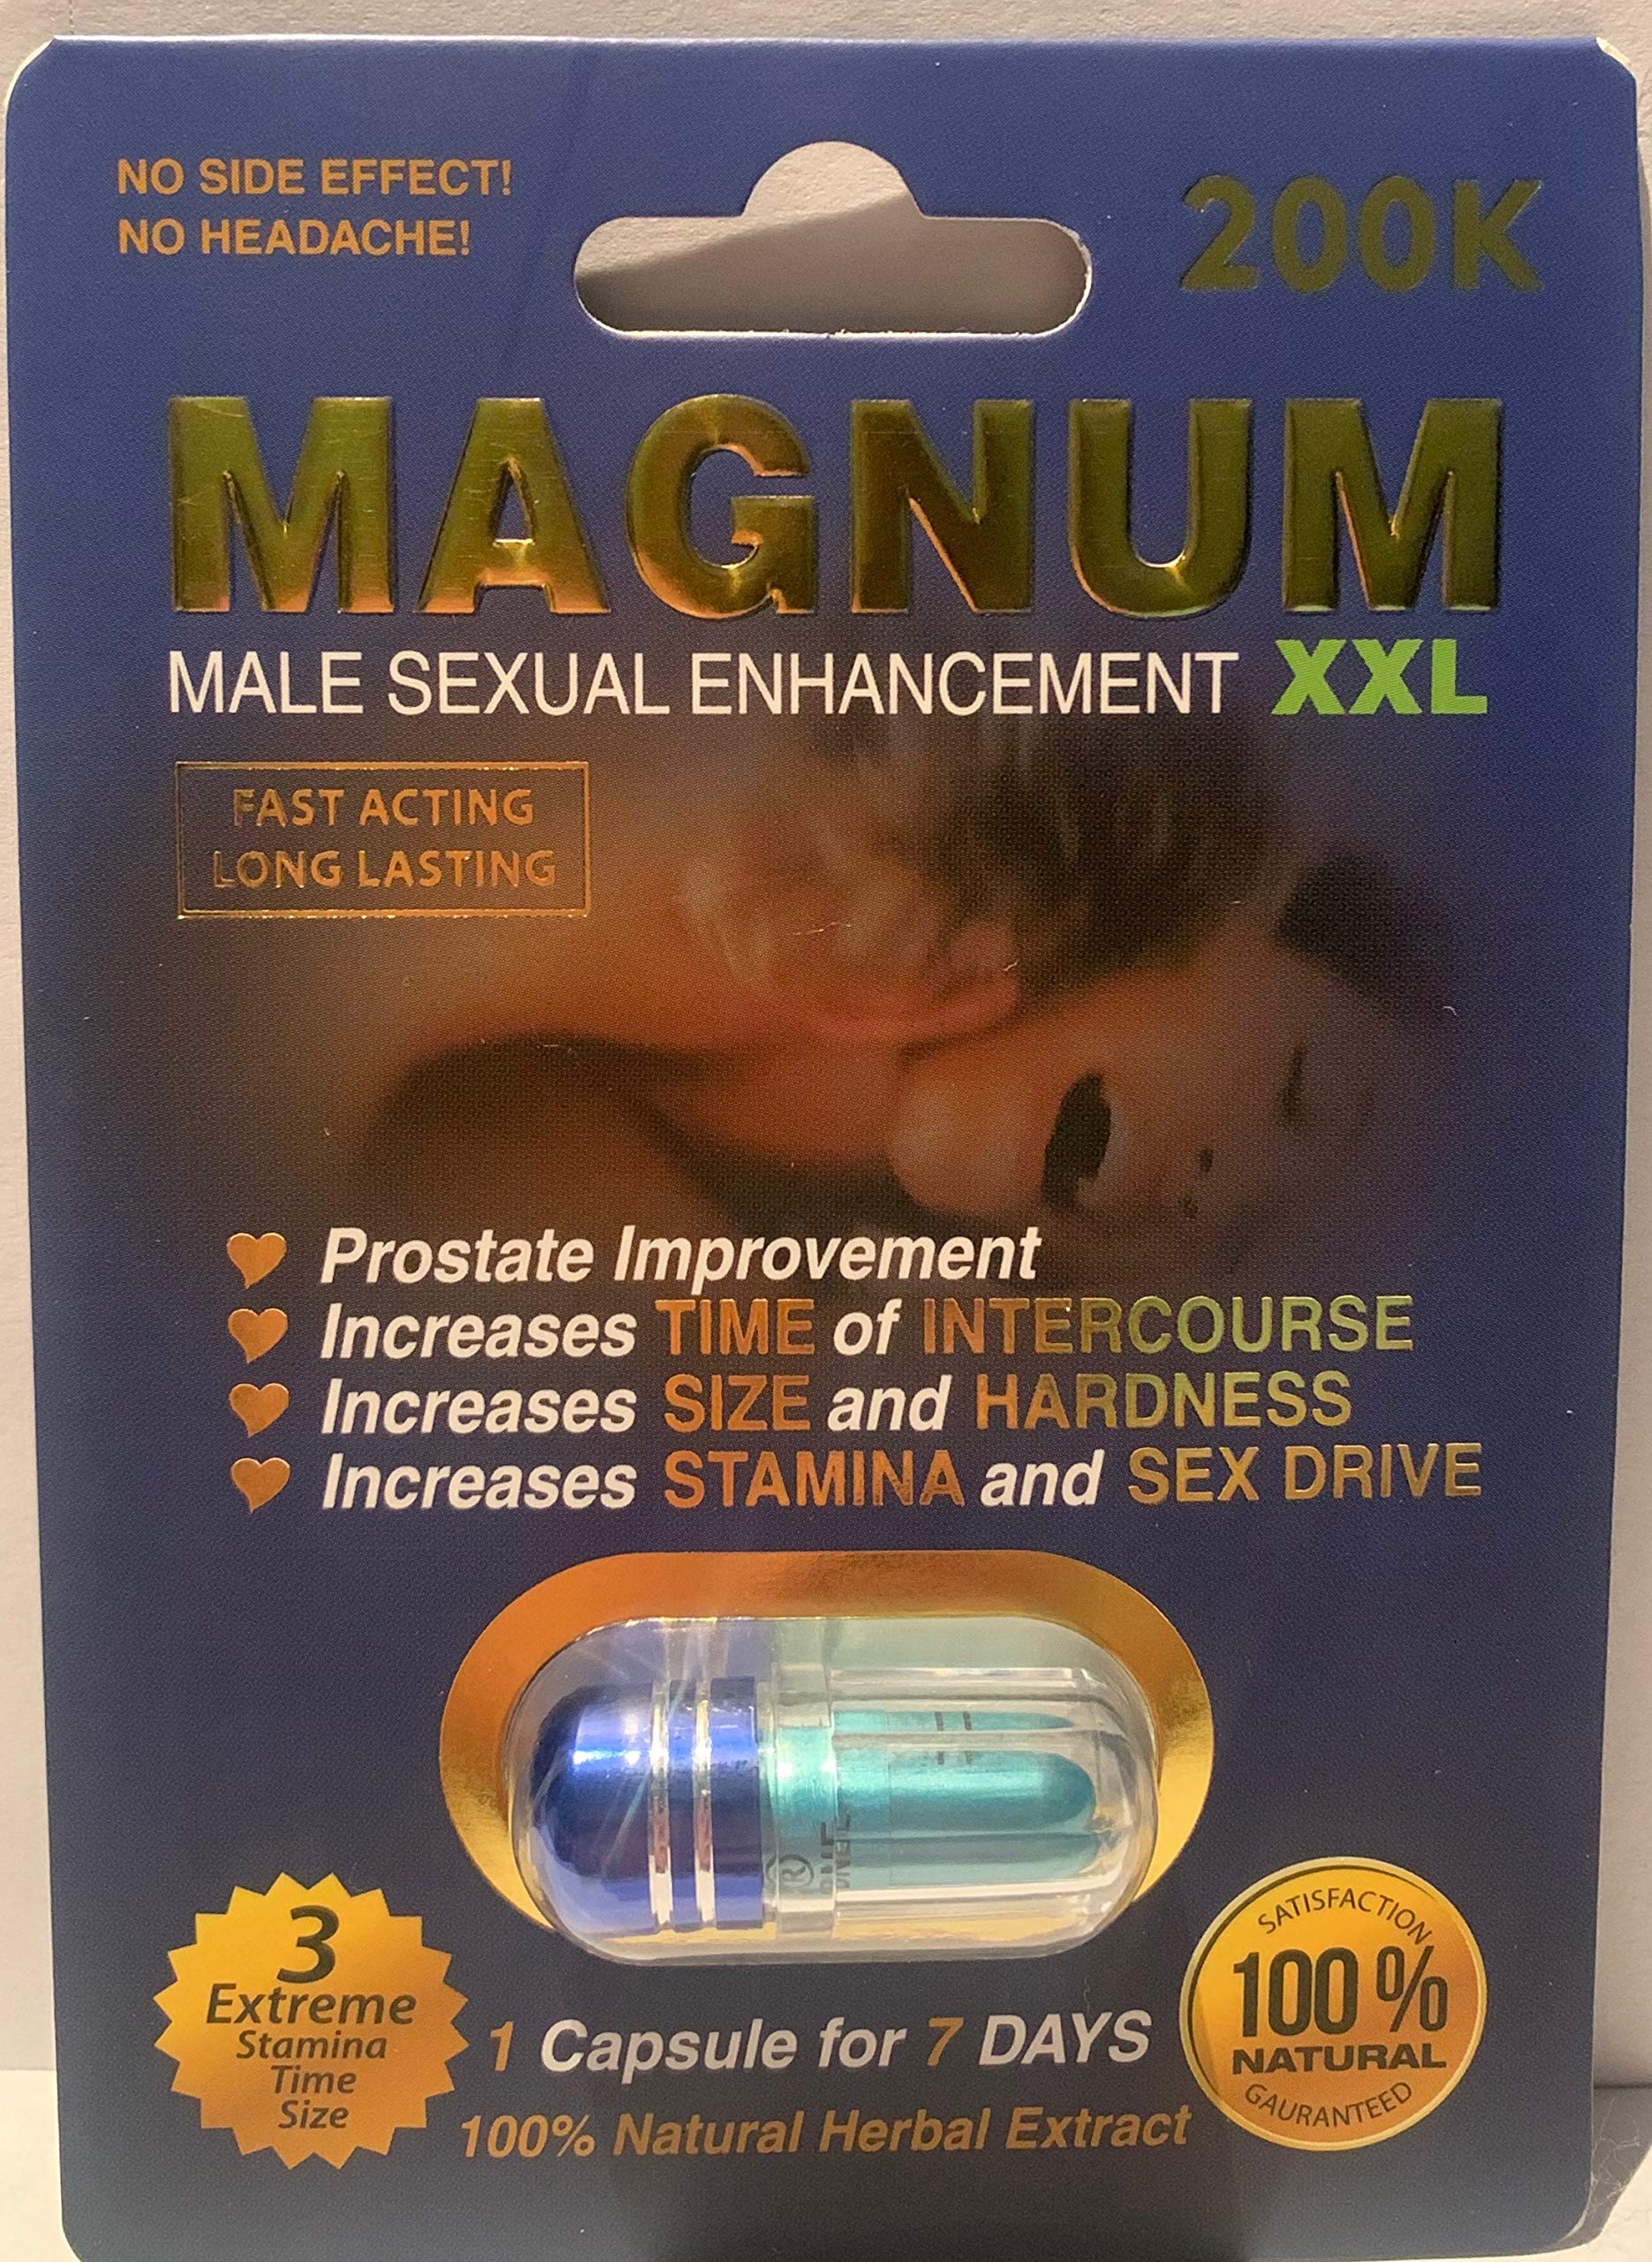 Magnum 200K XXL Blue Power Limited Edition (3) by Libimax (Image #1)